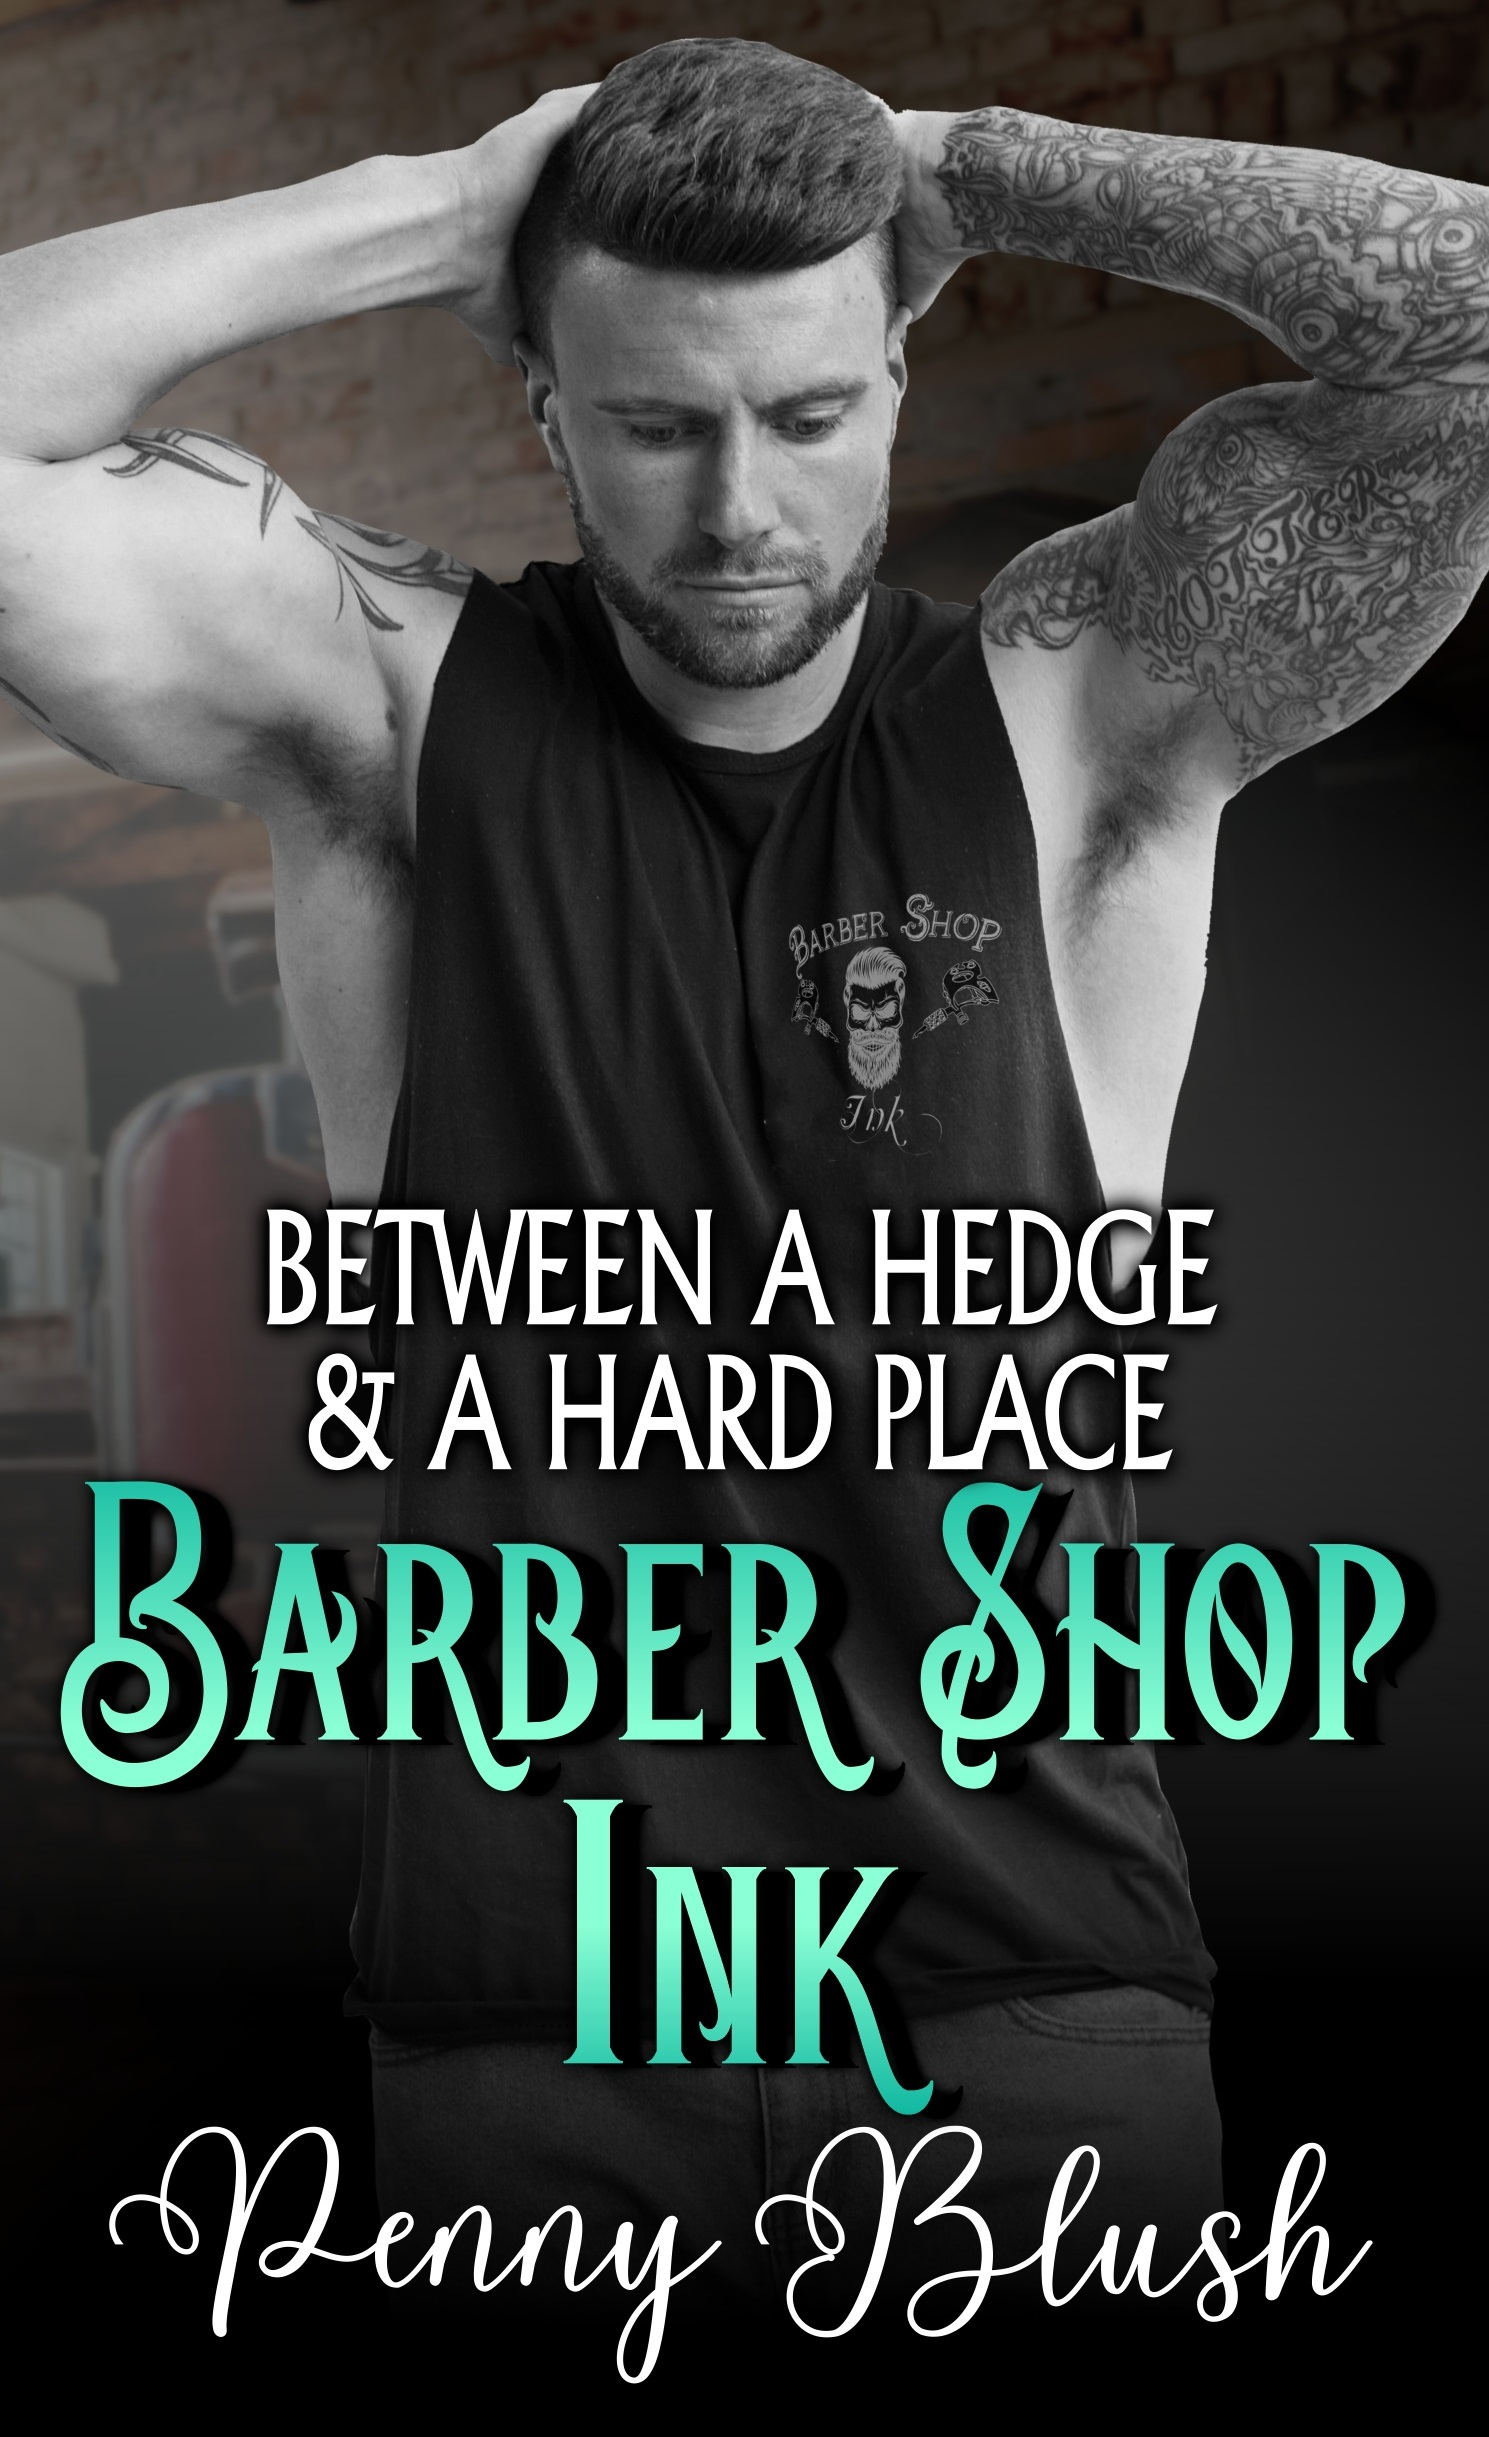 Barber Shop Ink 2